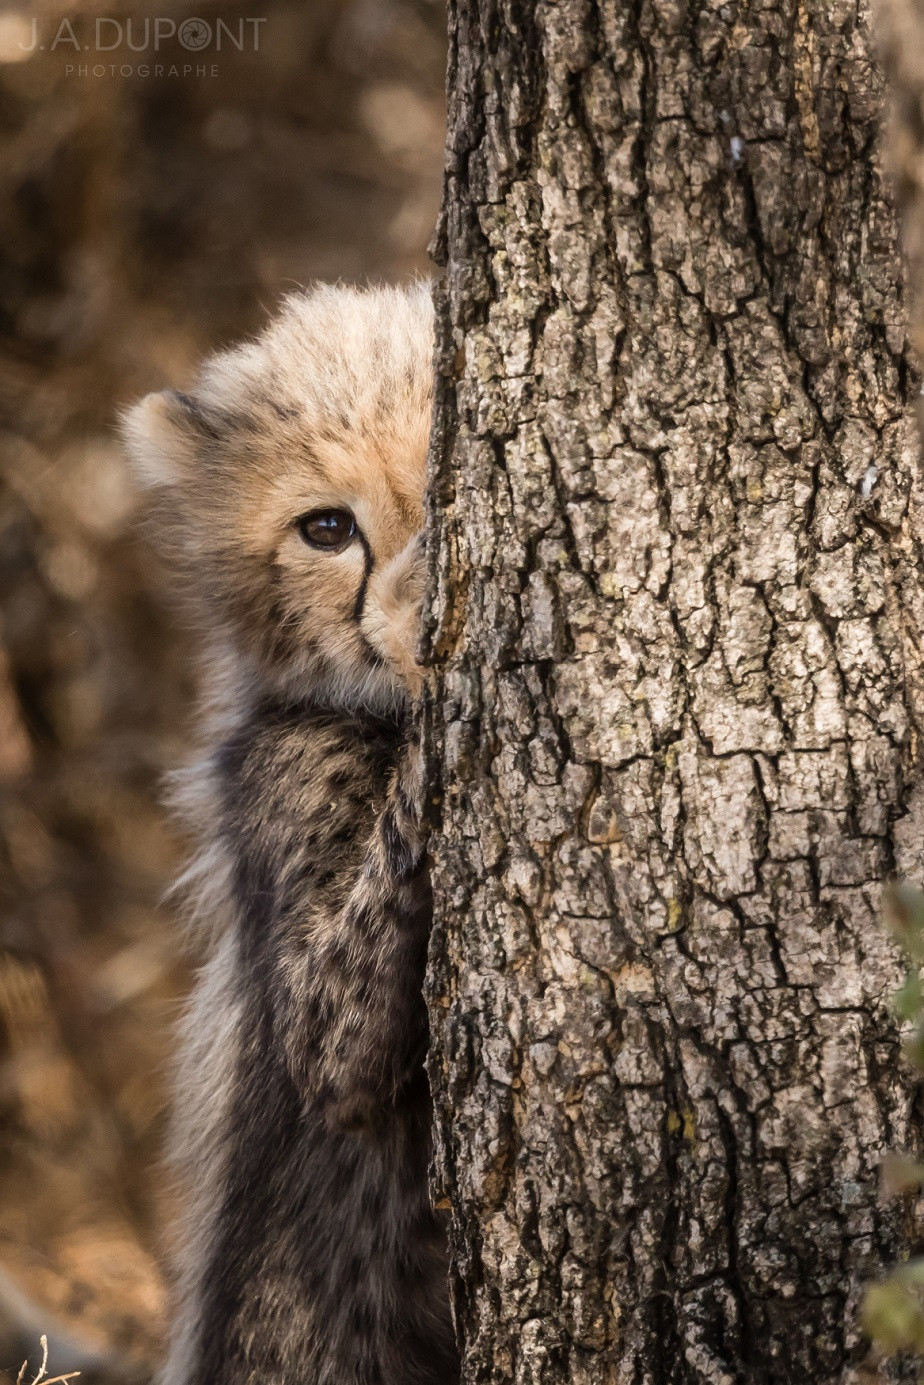 Shy But Curious, Serengeti National Park, by wildlife photographer Jacques-André Dupont